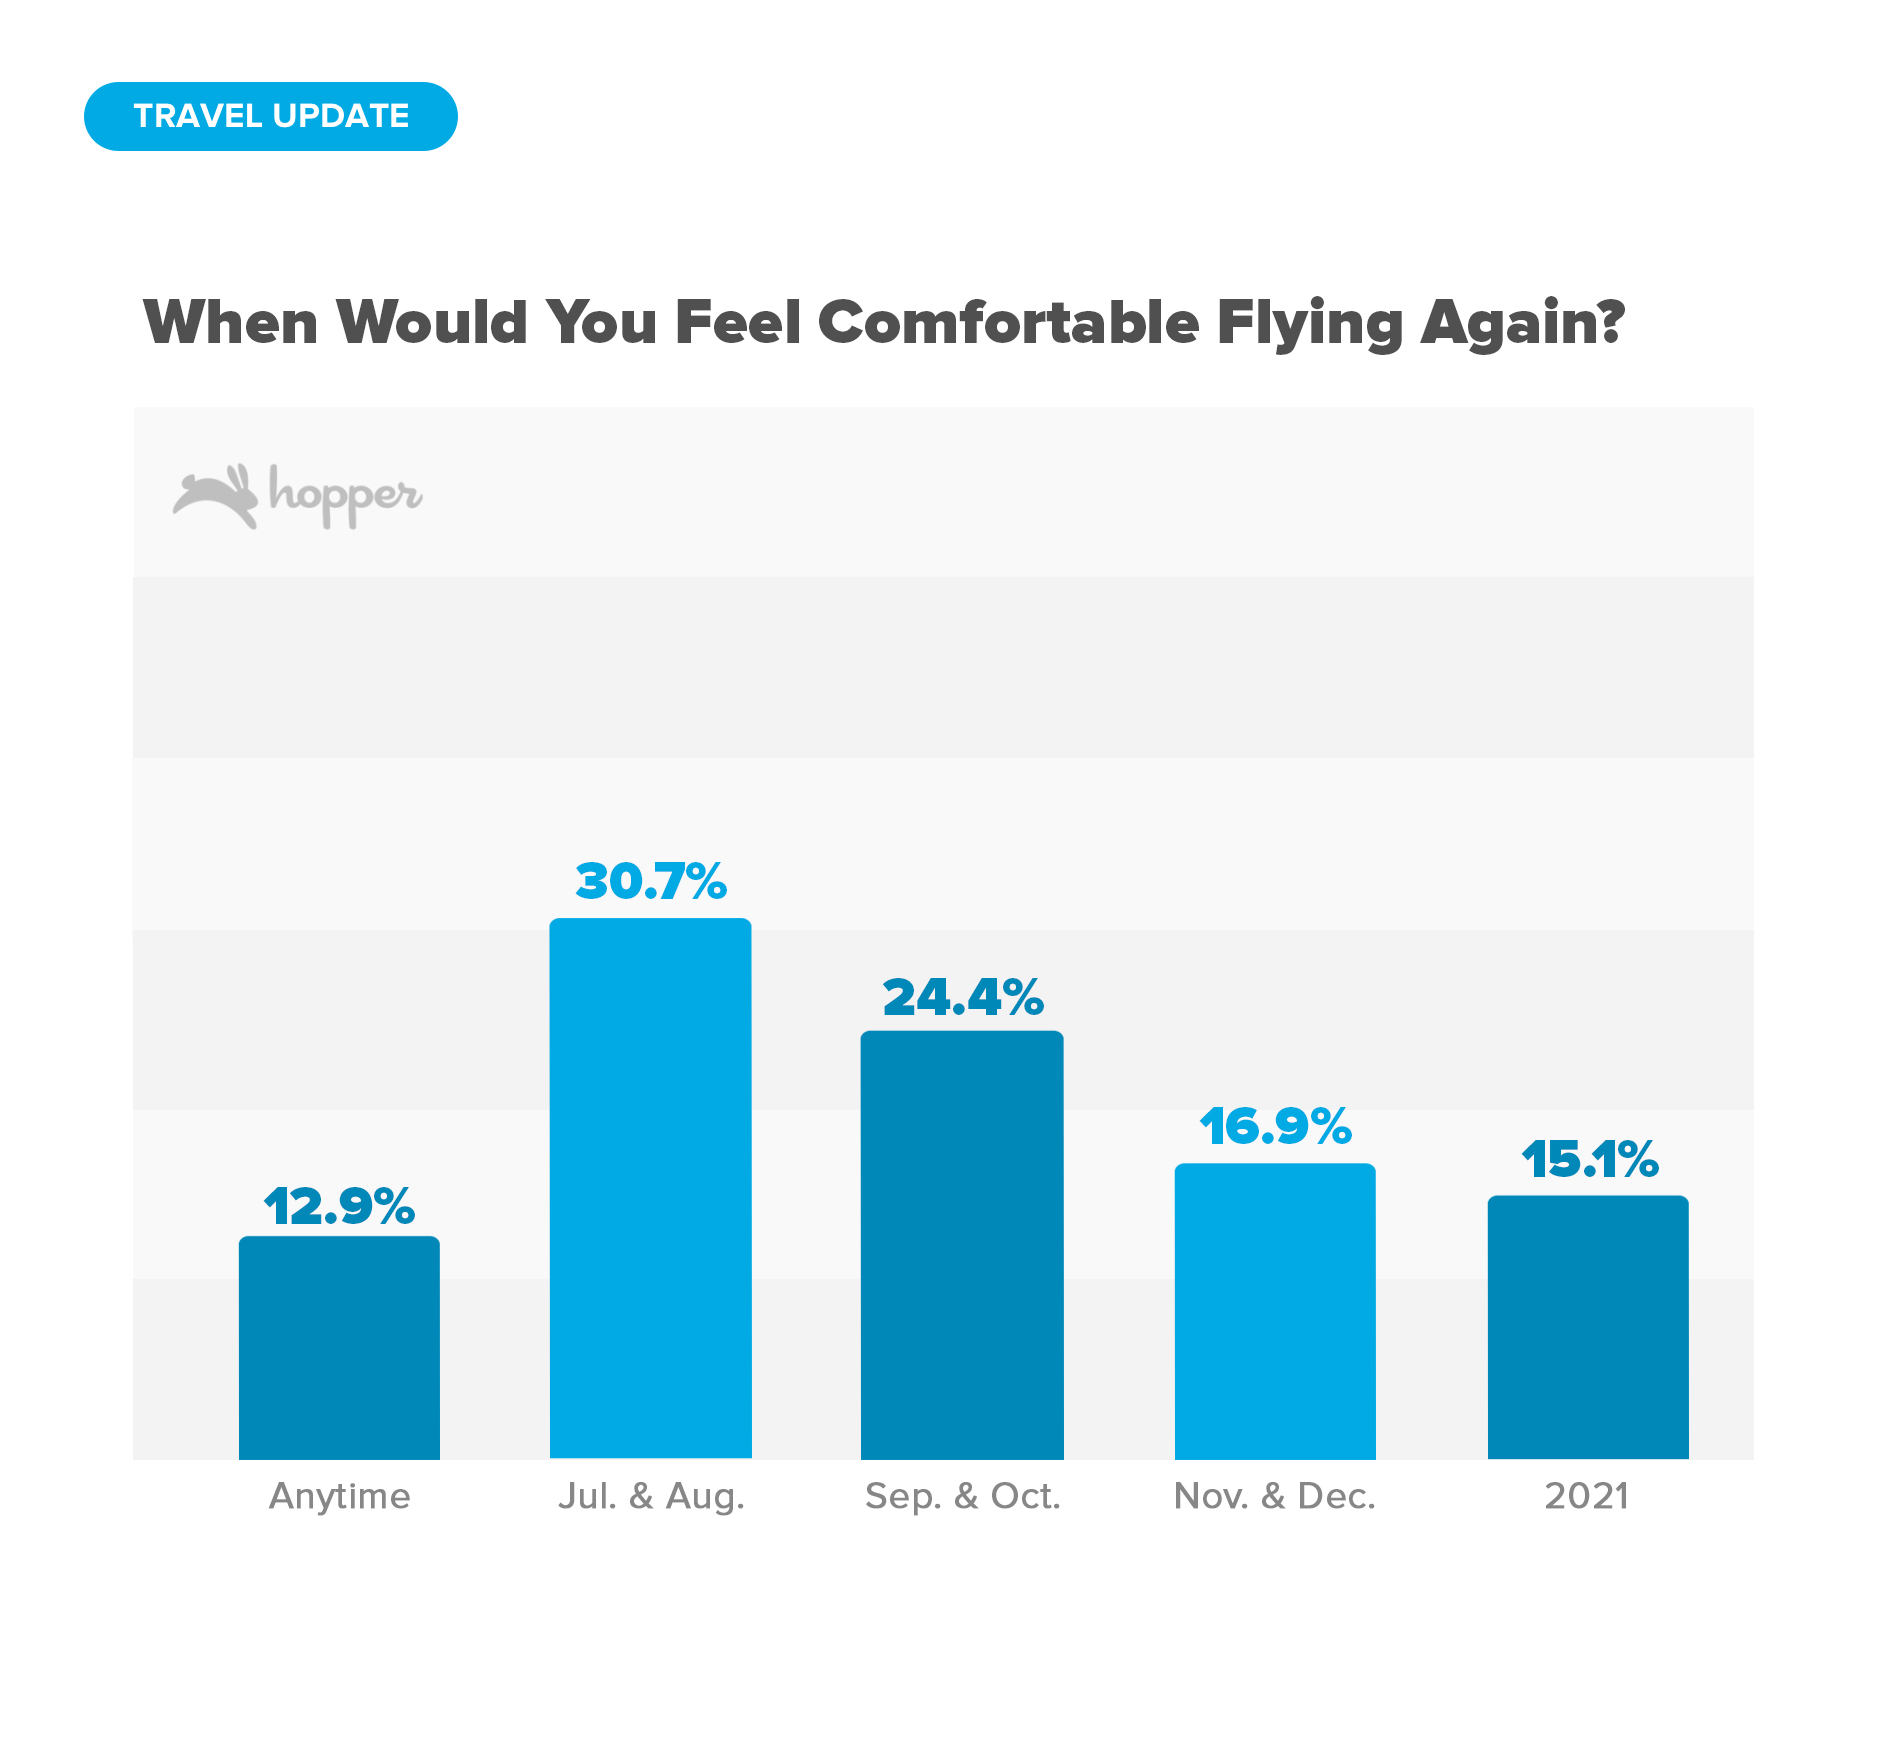 When Would You Feel Comfortable Flying Again?